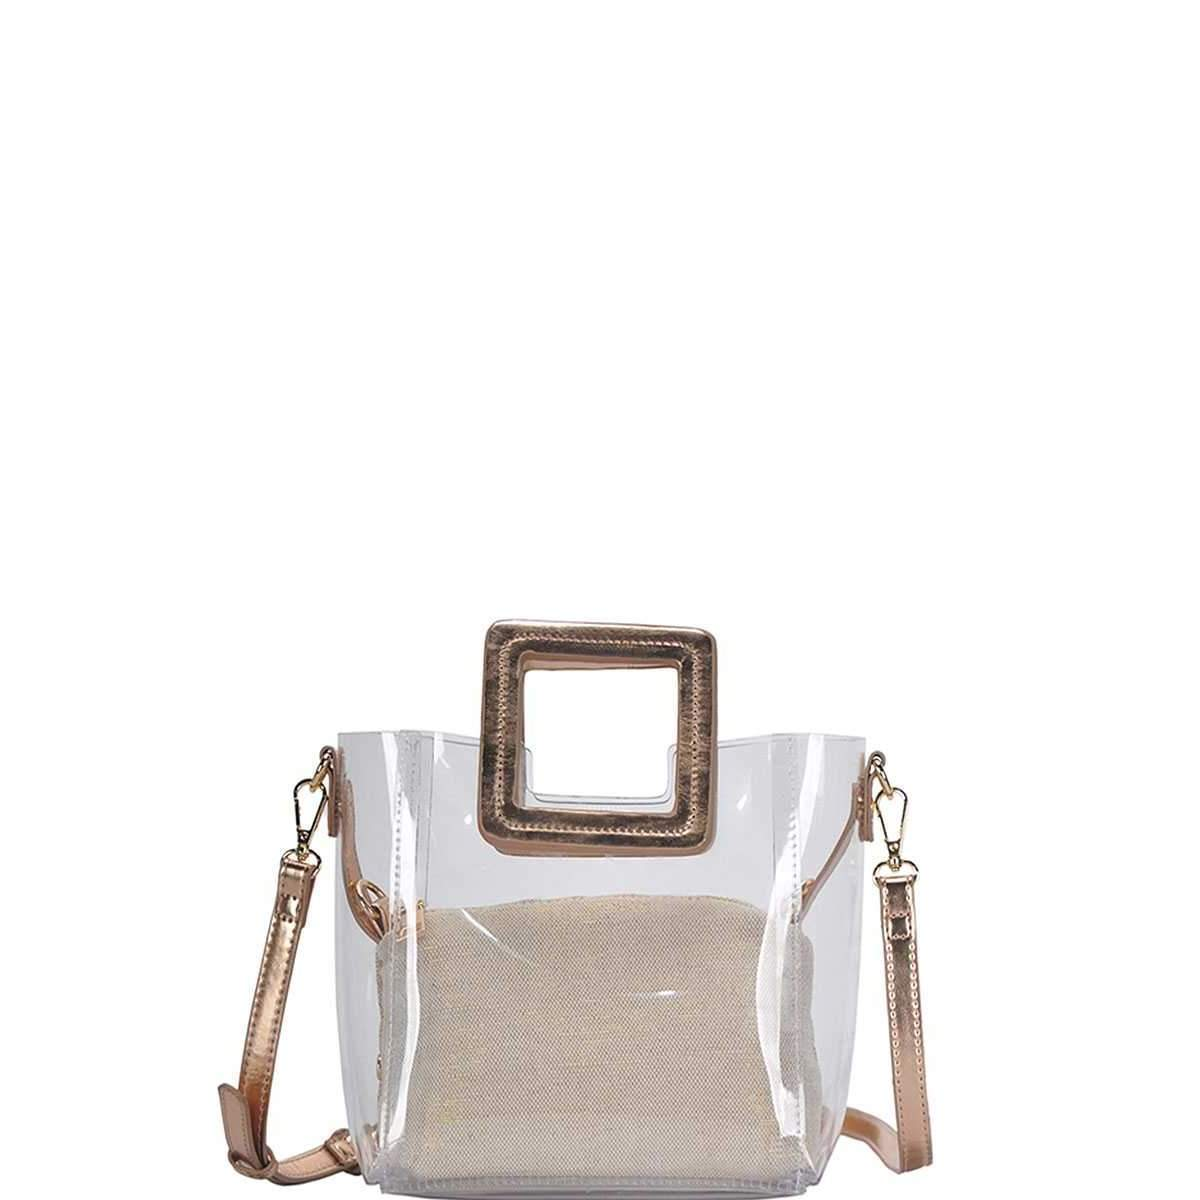 2in1 Transparent Satchel With Long Strap-SamiraBoutique